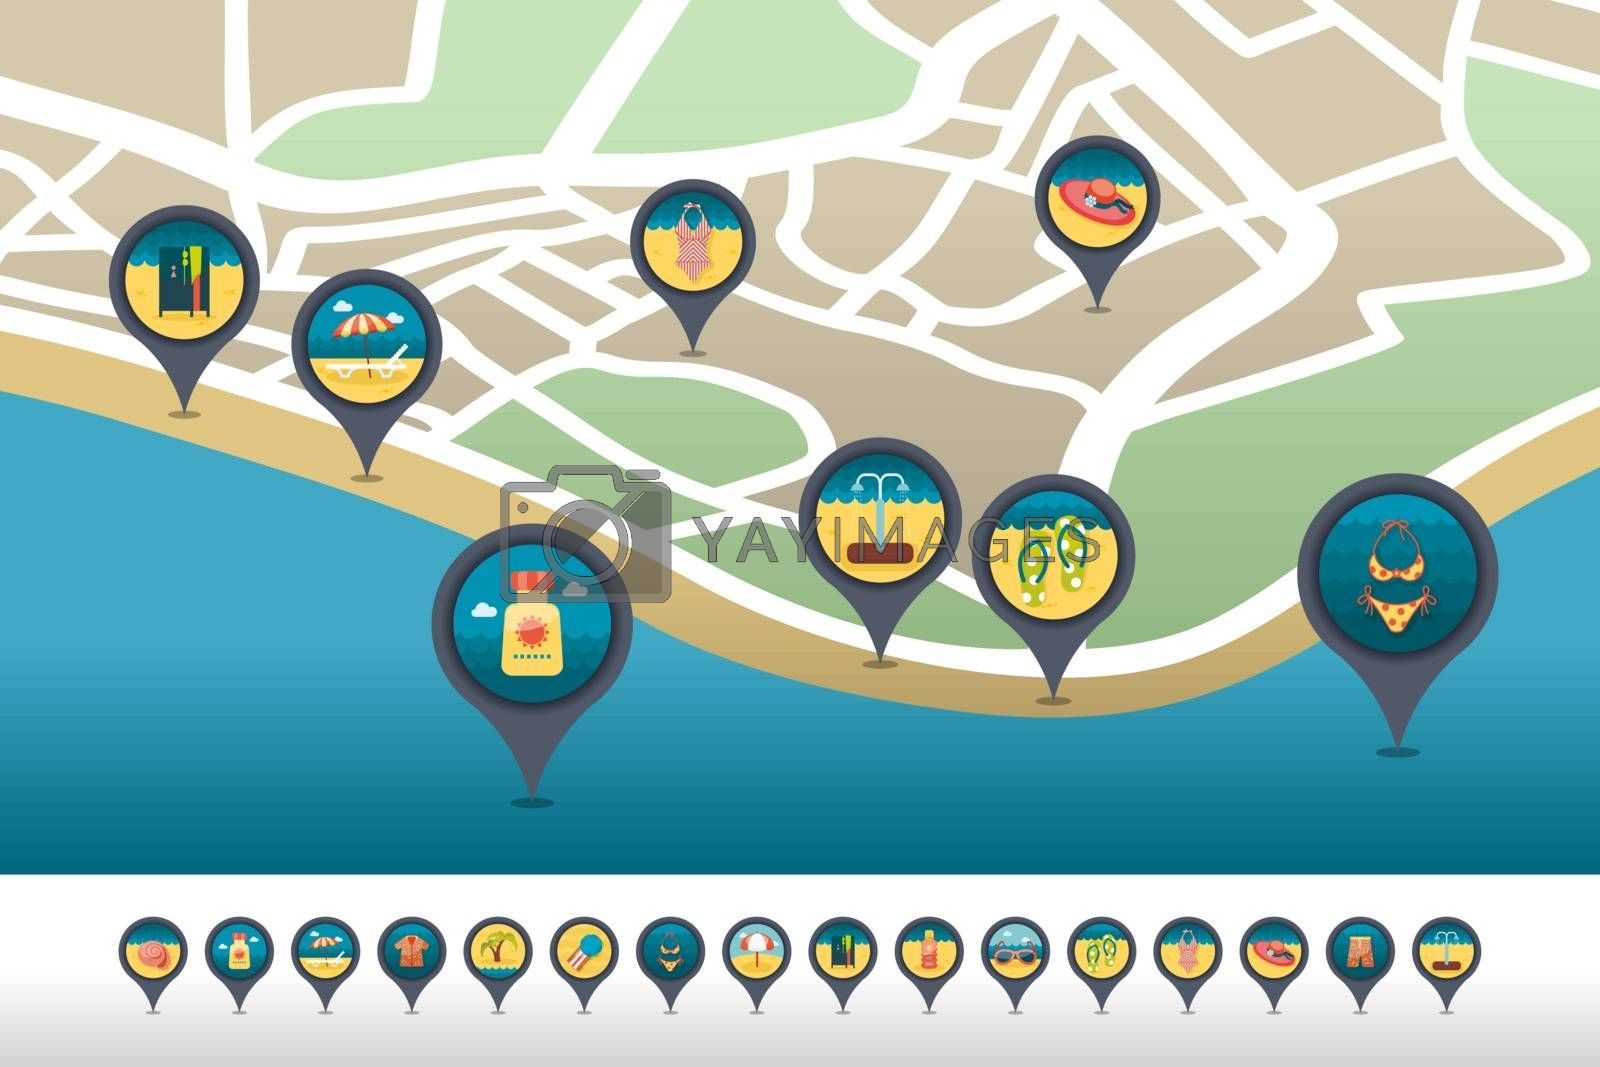 Beach pin map icon located on the map. Vacation by nosik